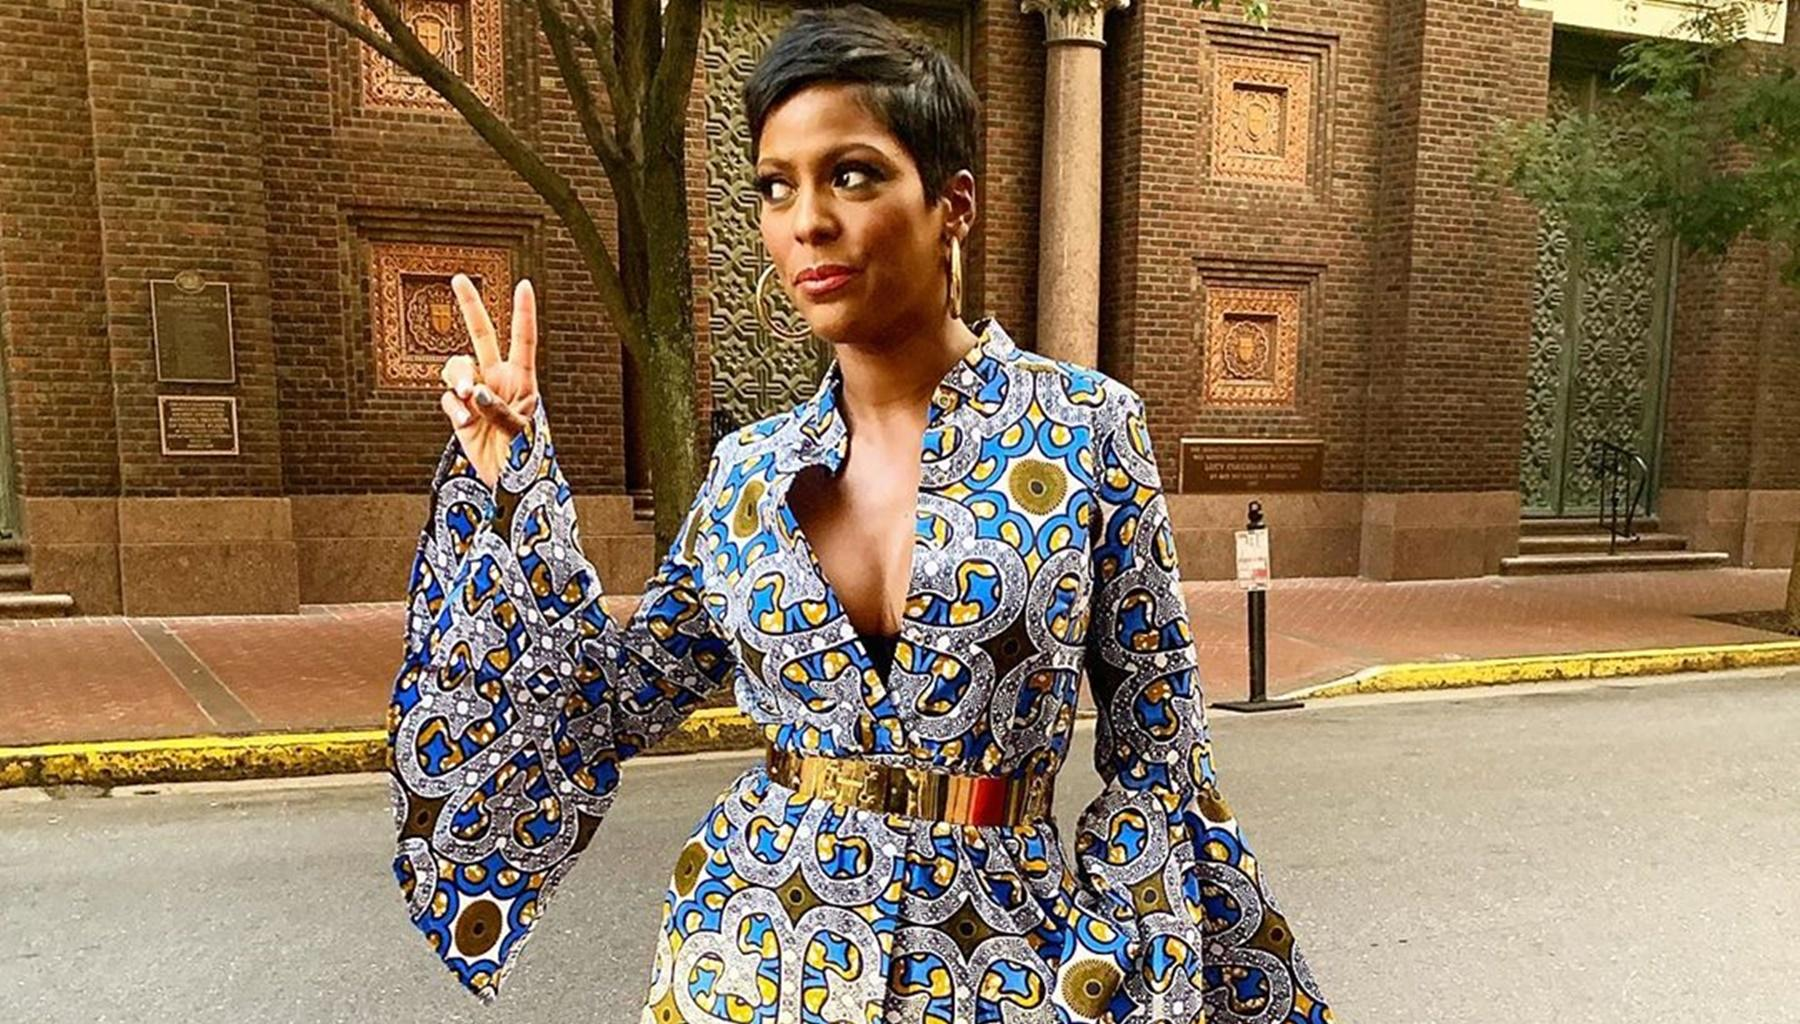 Tamron Hall Gets Bashed For Comparing Herself To Marilyn Monroe In This Photo, But There Is So Much More Behind The Story